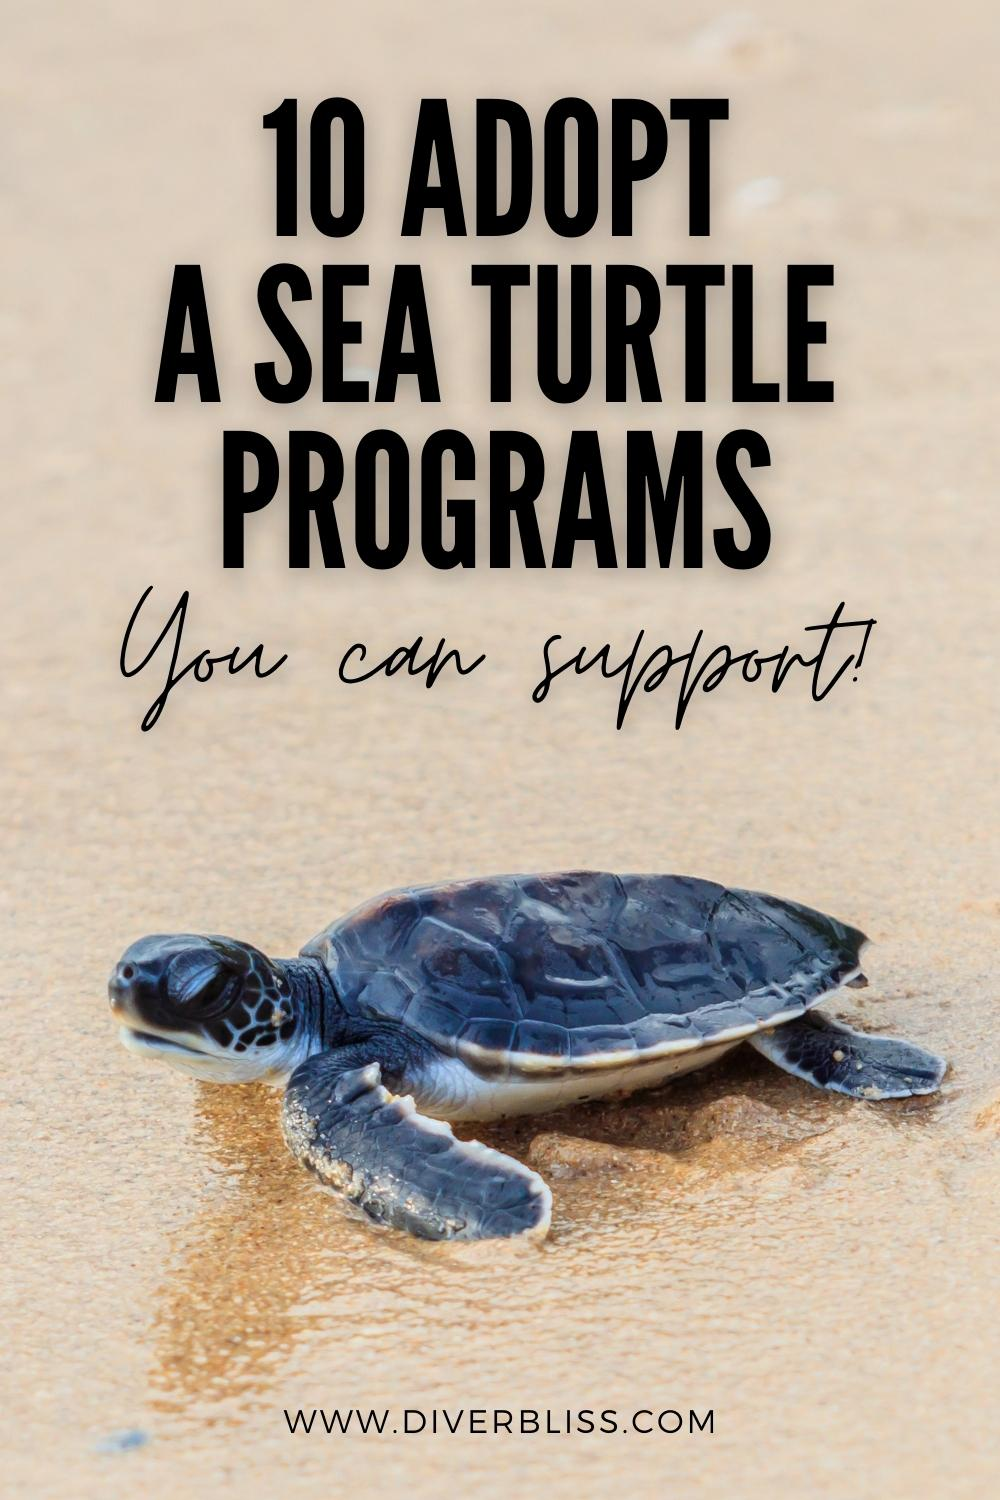 10 adopt a sea turtle programs you can support